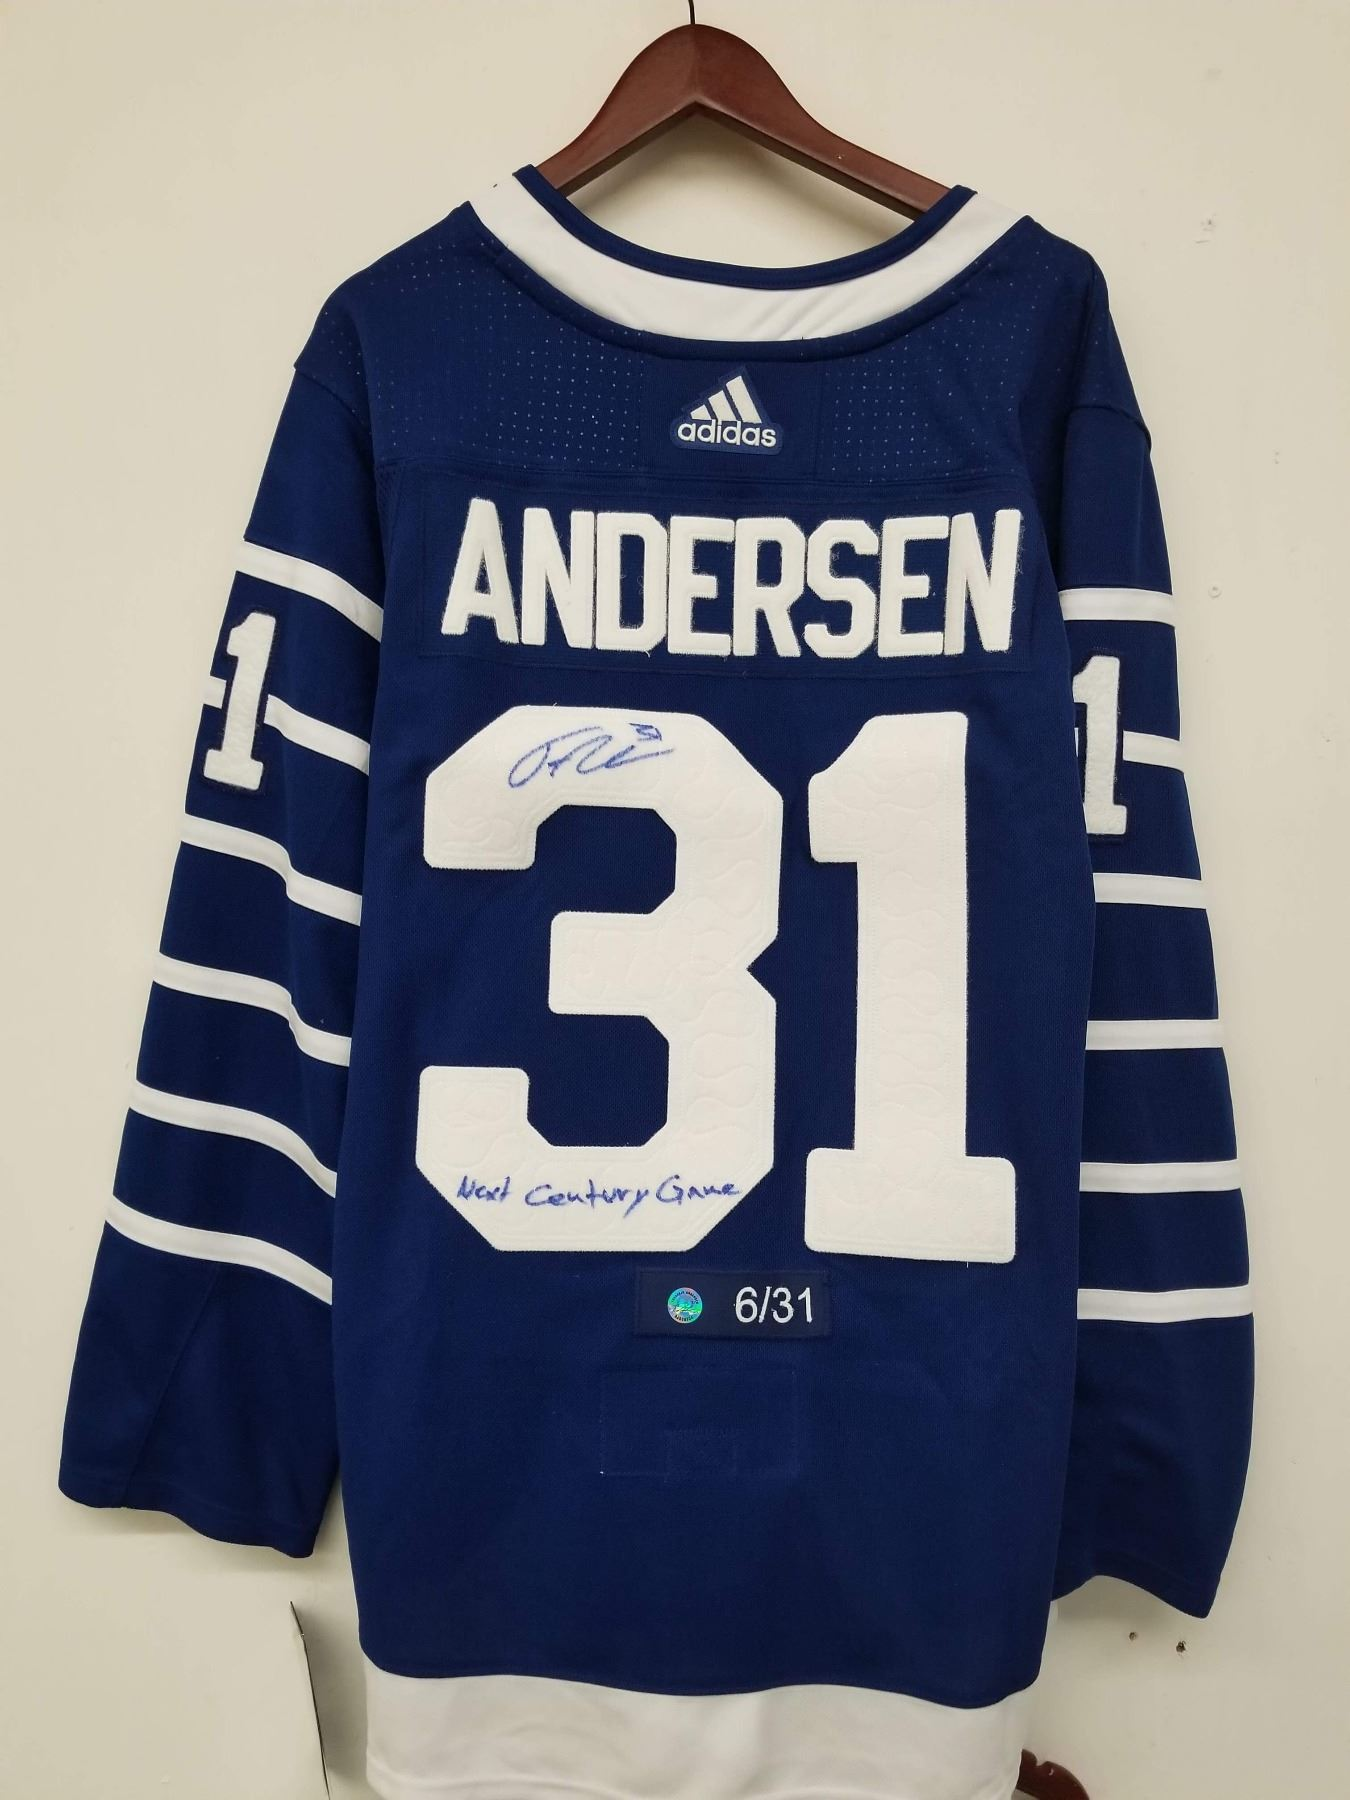 the best attitude 0509b bbd0d FREDERICK ANDERSEN SIGNED TORONTO ARENAS THROWBACK HOCKEY JERSEY W/ COA